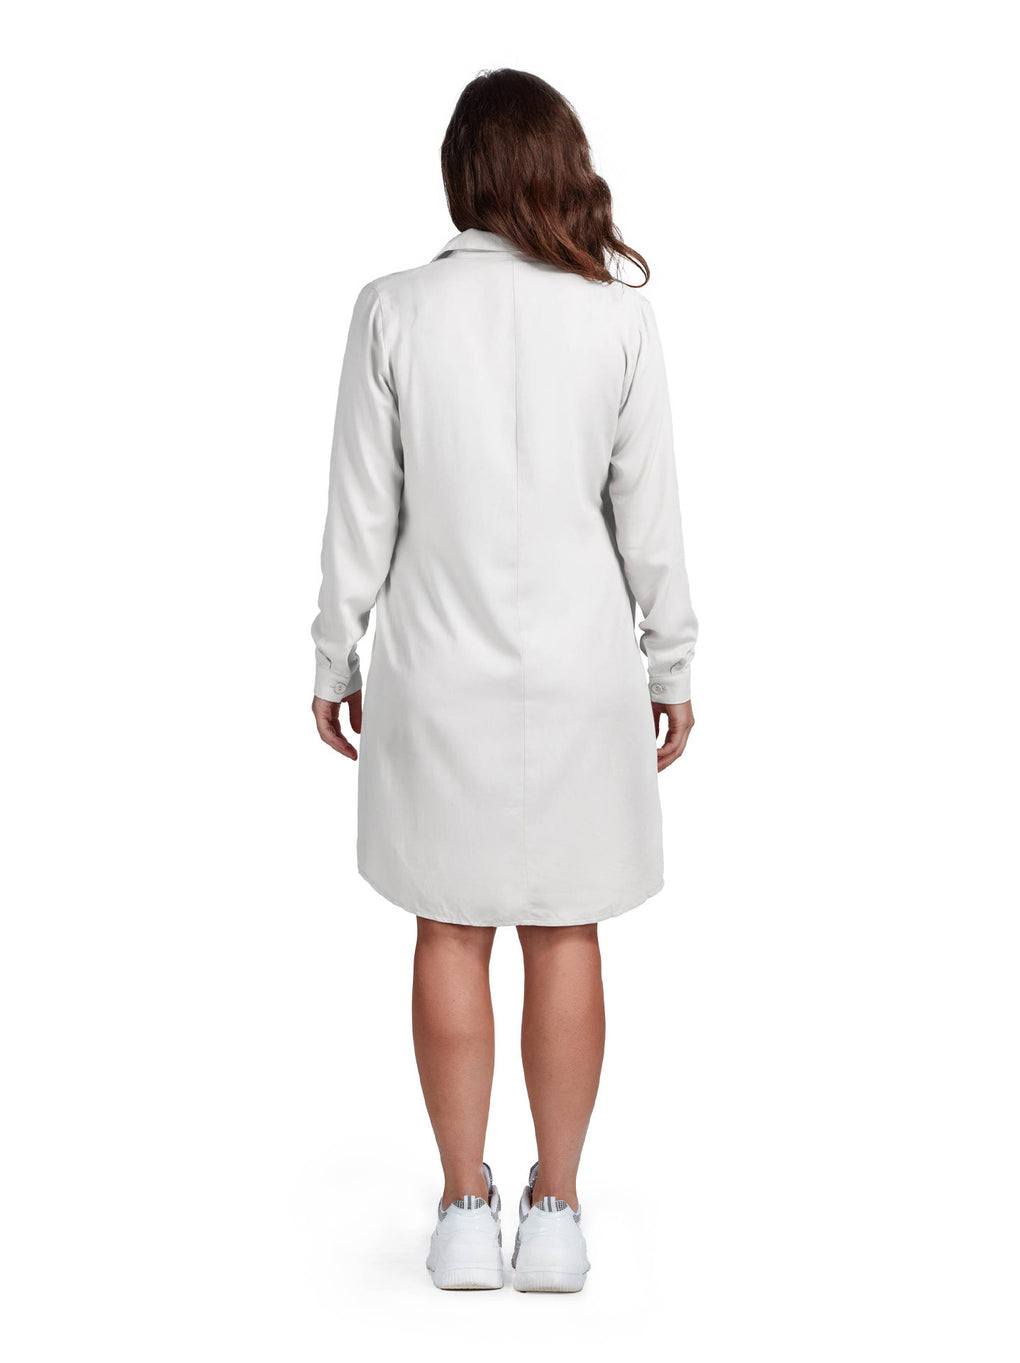 Women's Wrap Knot Dress - Creamy Vanilla